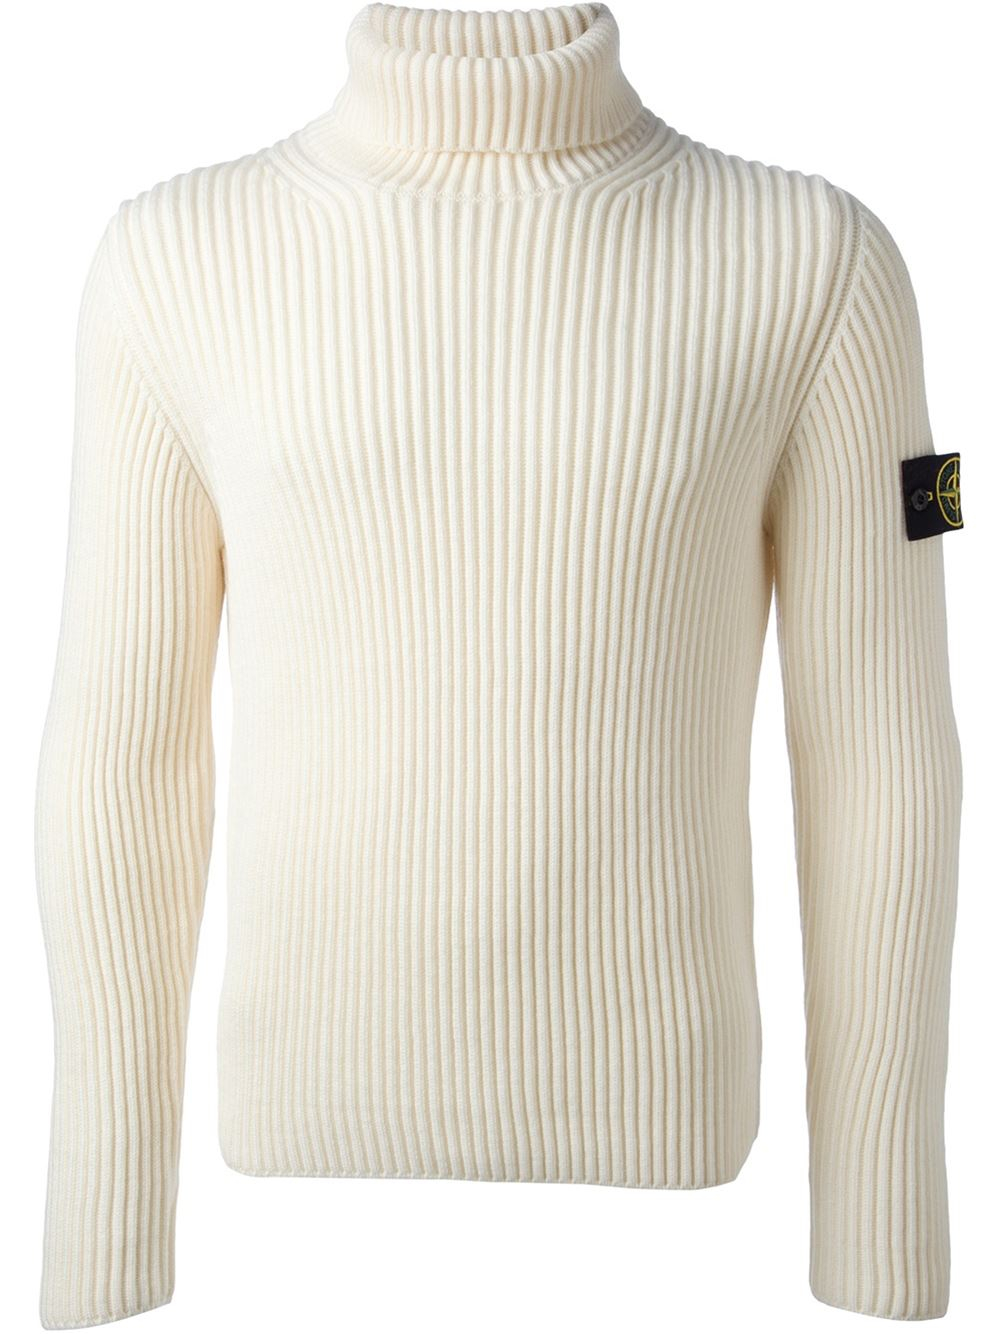 Stone island Ribbed Sweater in White for Men | Lyst